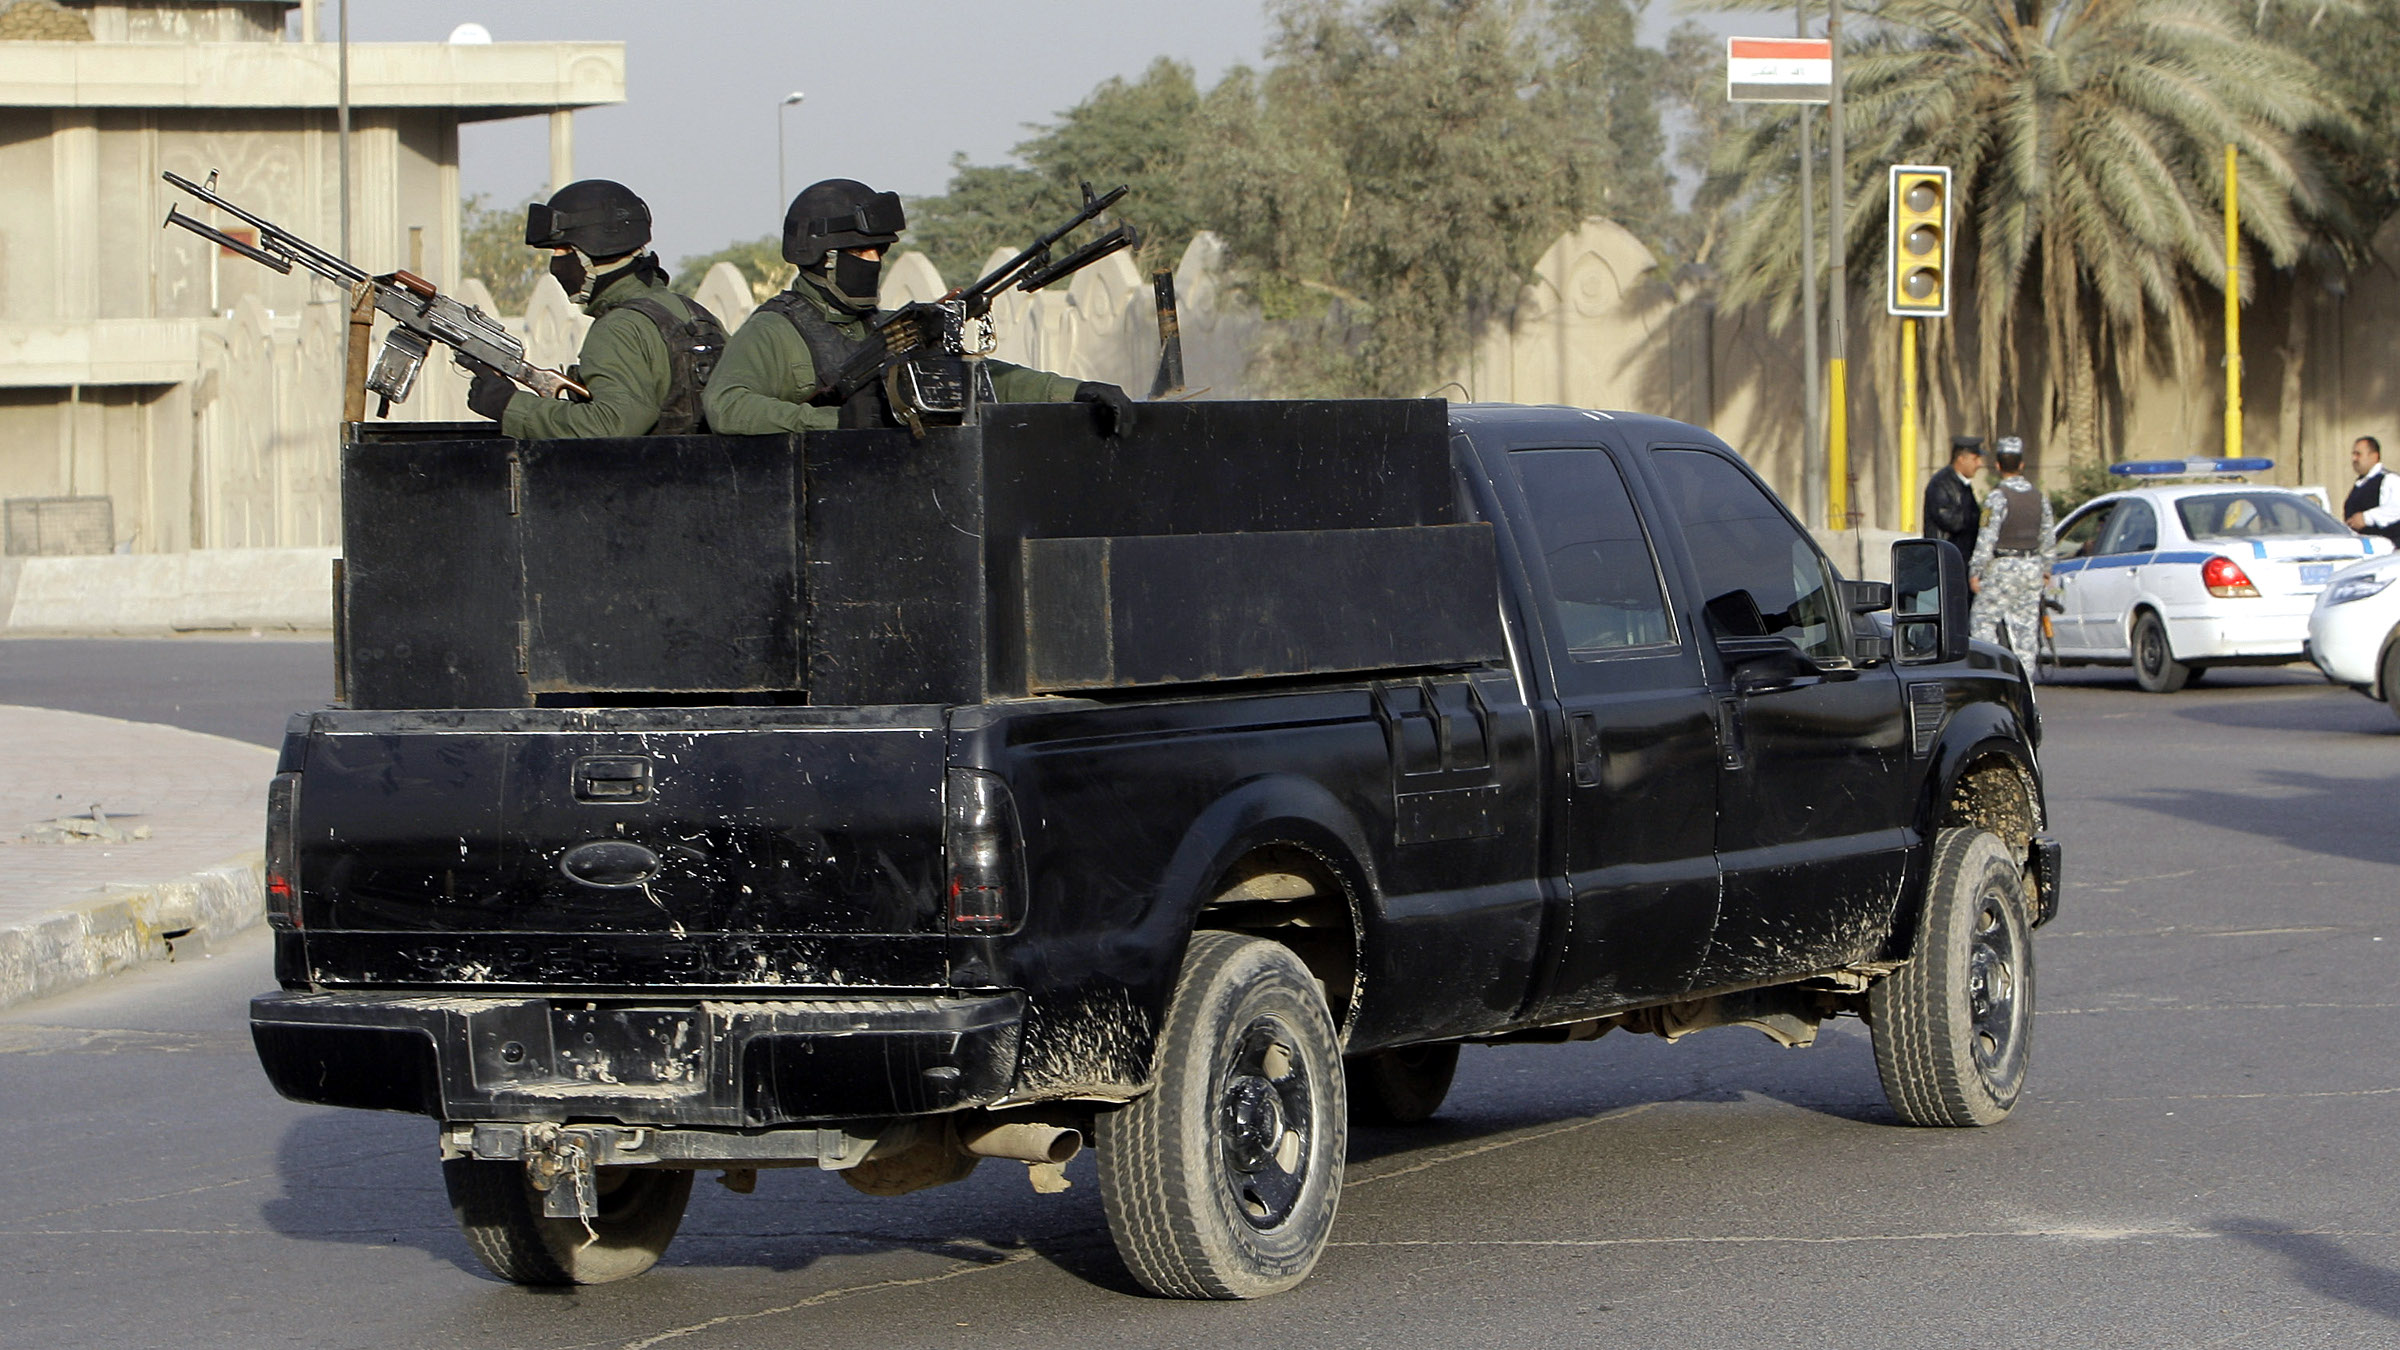 A private security company's armored vehicle rolls through al-Nisoor square,Baghdad, Iraq, Saturday, Jan. 2, 2010. A U.S. federal judge has dismissed all charges against five Blackwater Worldwide security guards accused in the 2007 killing of unarmed Iraqi civilians, in a case that has inflamed anti-American sentiment in Iraq.